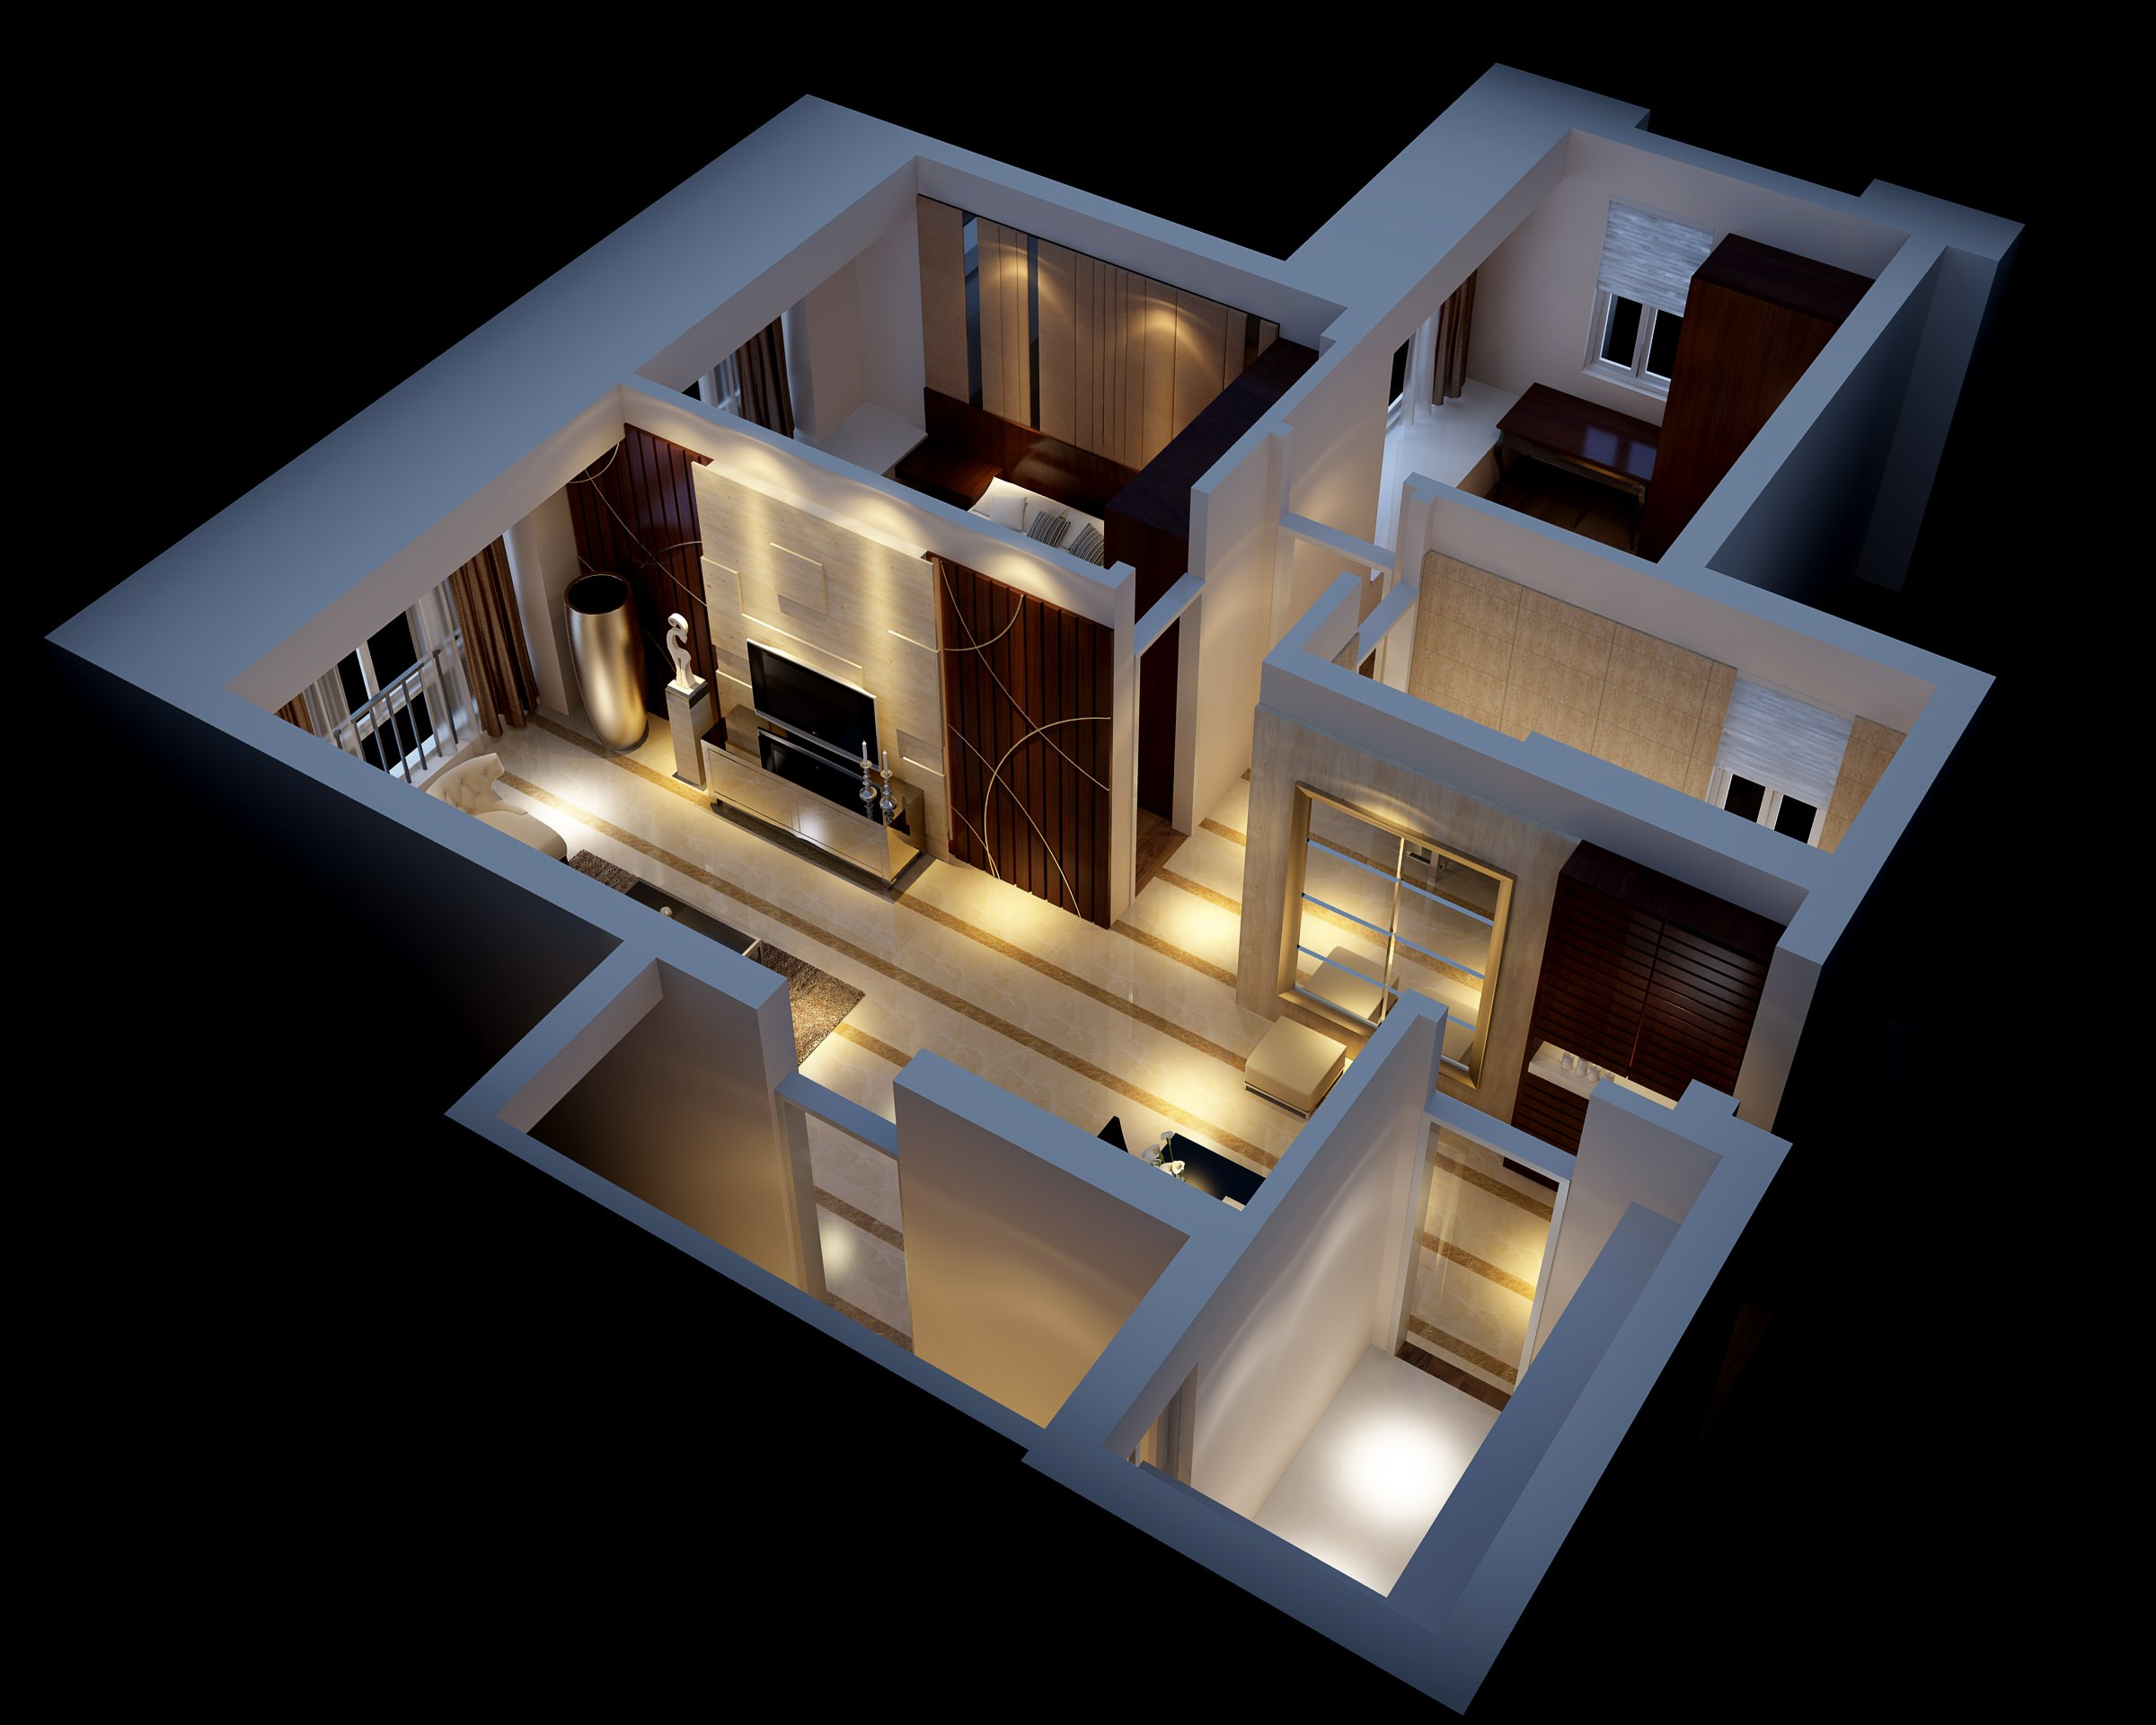 Modern house interior fully furnished 3d model max 3d model house design